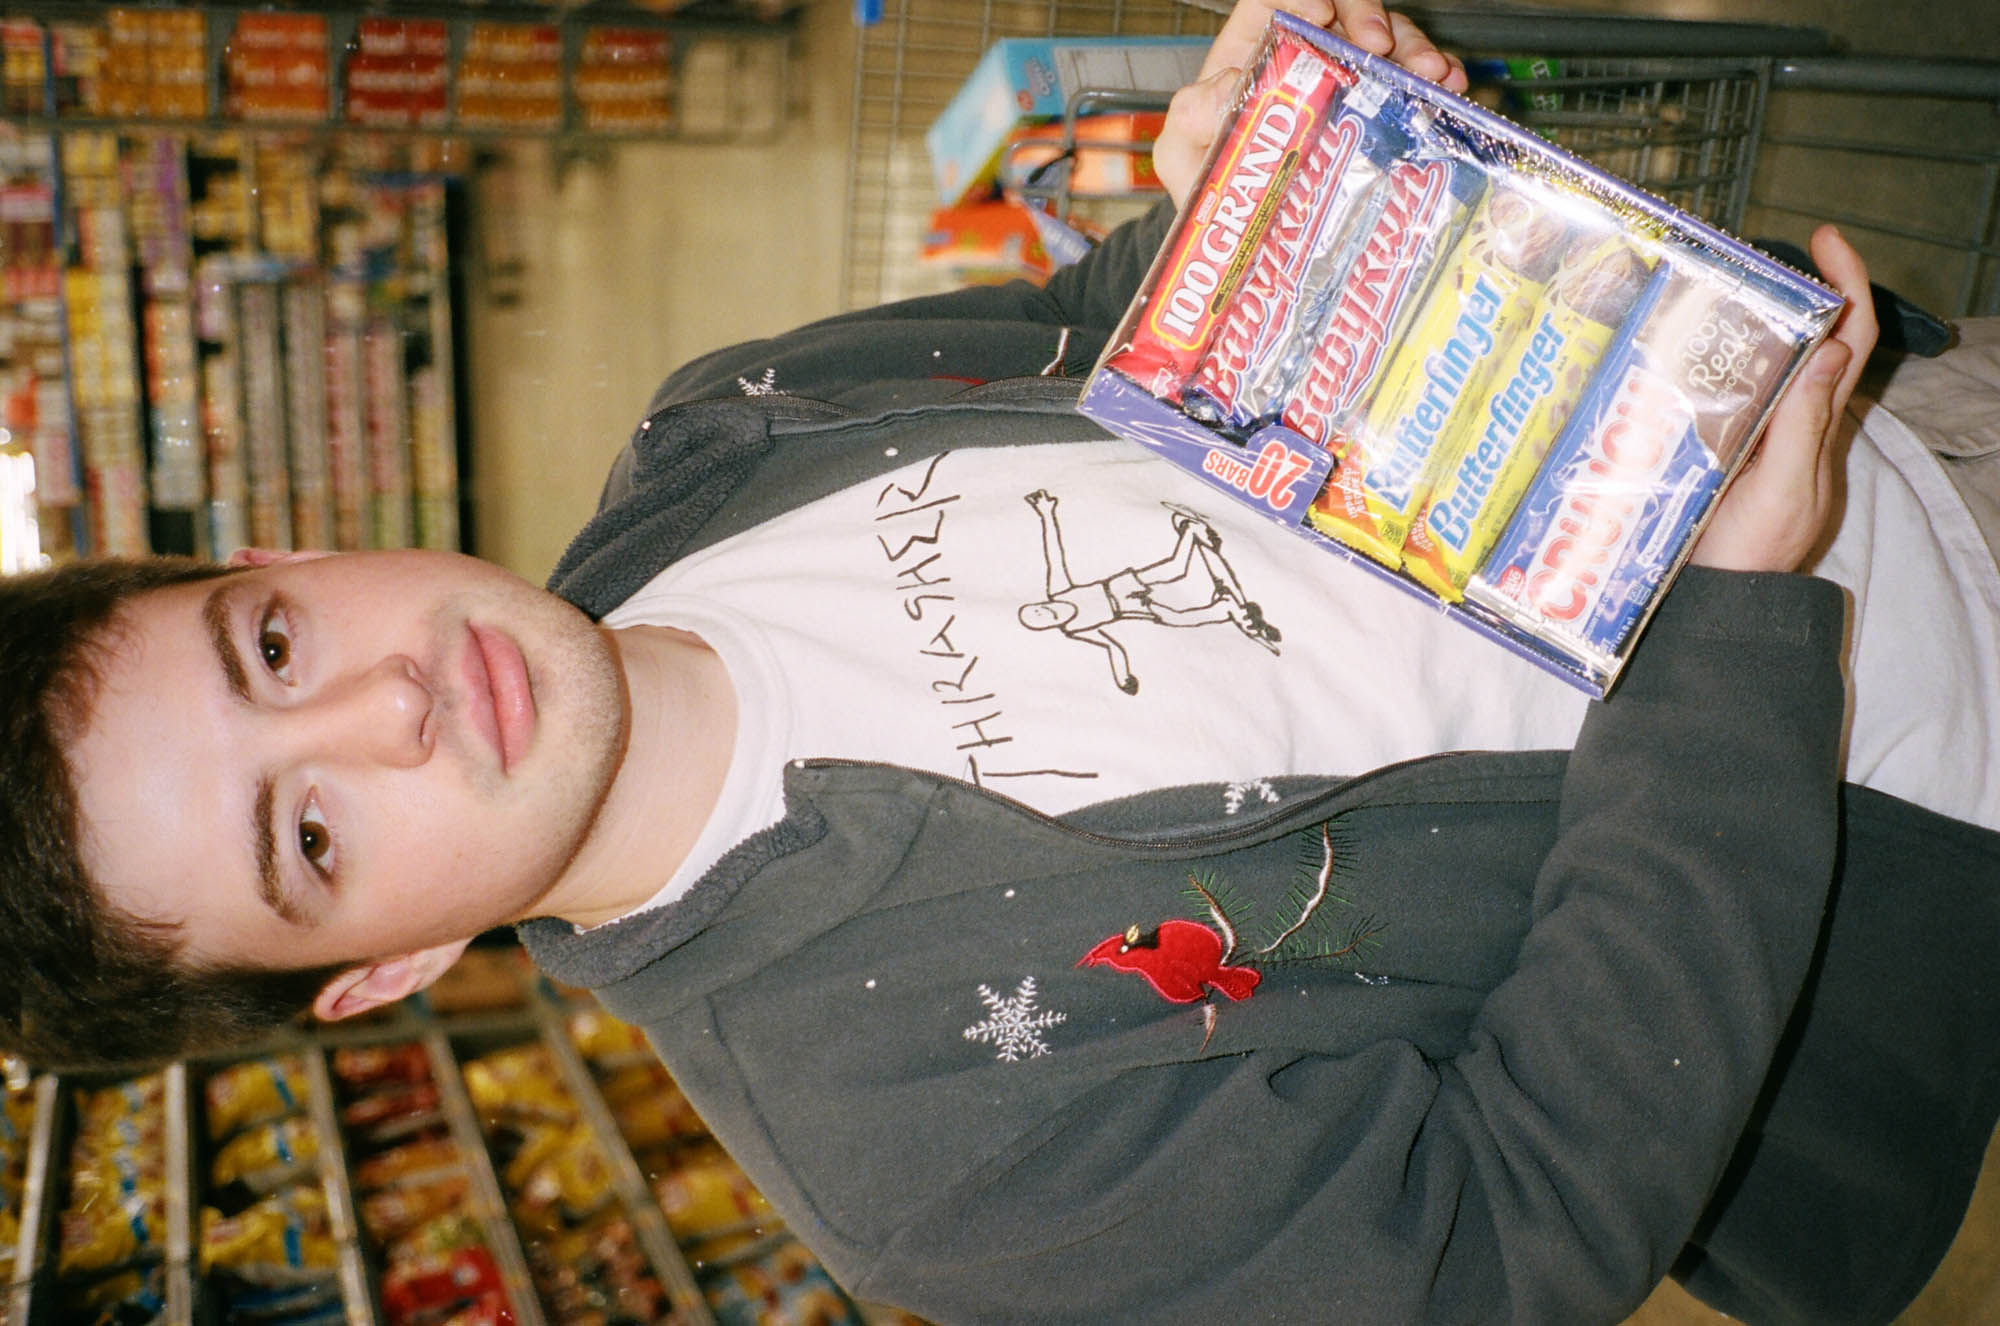 Me and my friend Cameron going candy shopping at Wal-Mart.